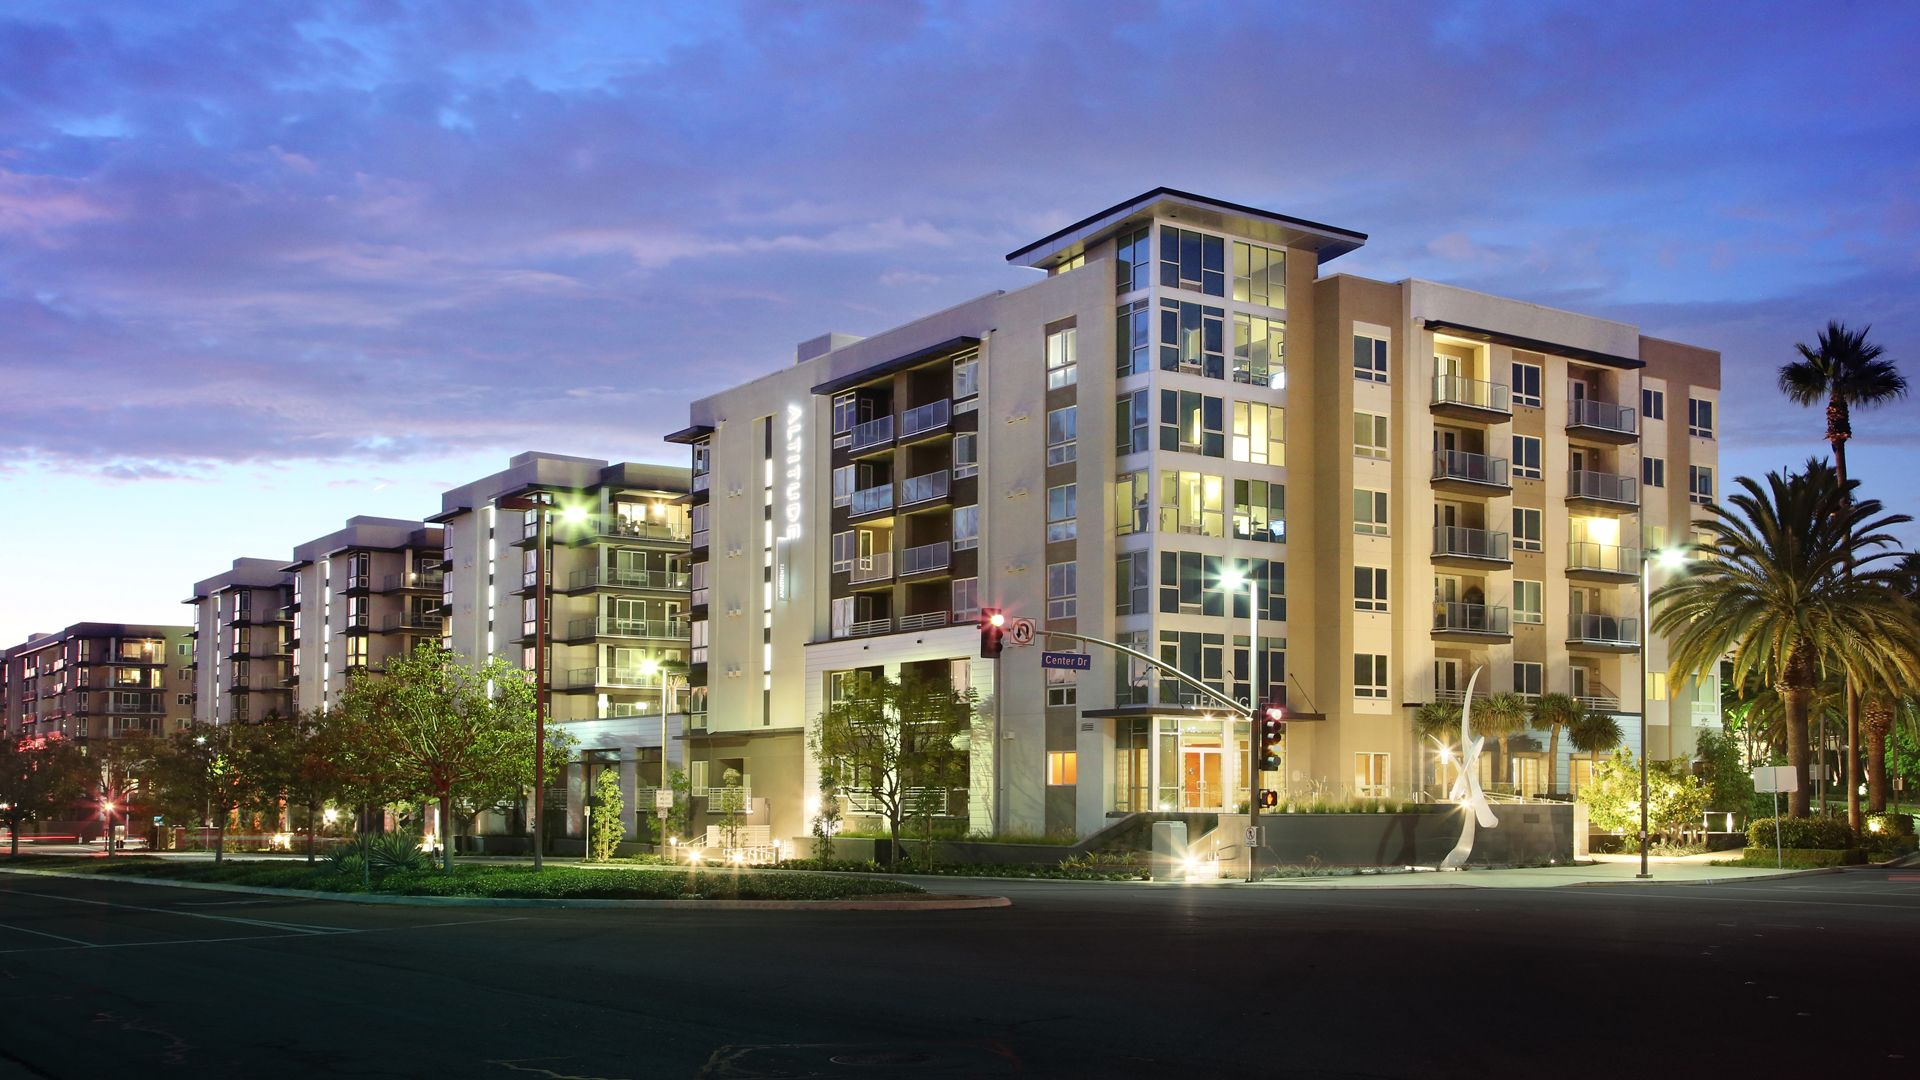 Apartments For Rent On Irvine Blvd